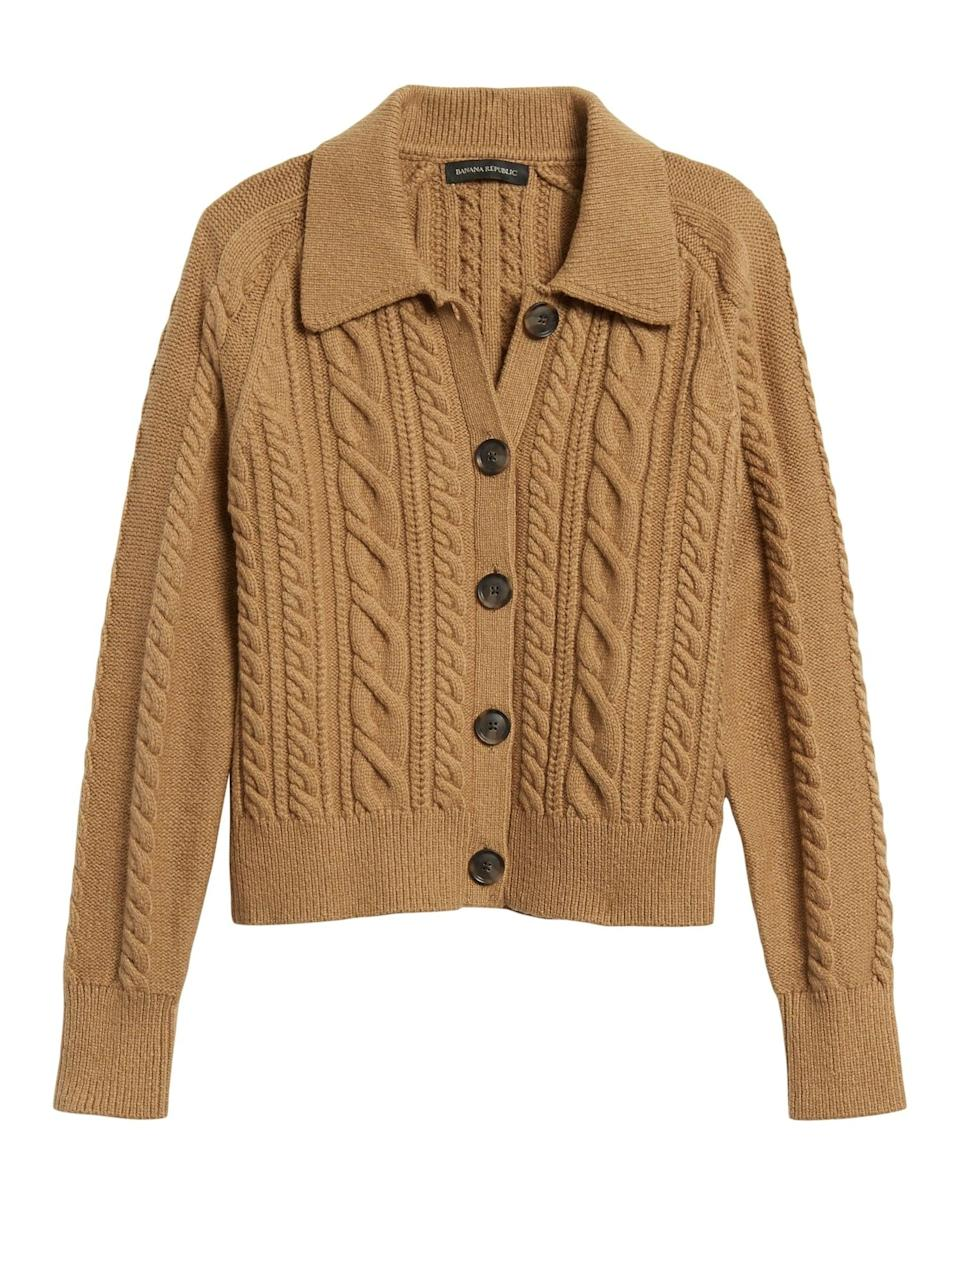 <p>Swap your blazer for this cozy <span>Banana Republic Heritage Cable-Knit Cardigan Sweater</span> ($103, originally $129).</p>